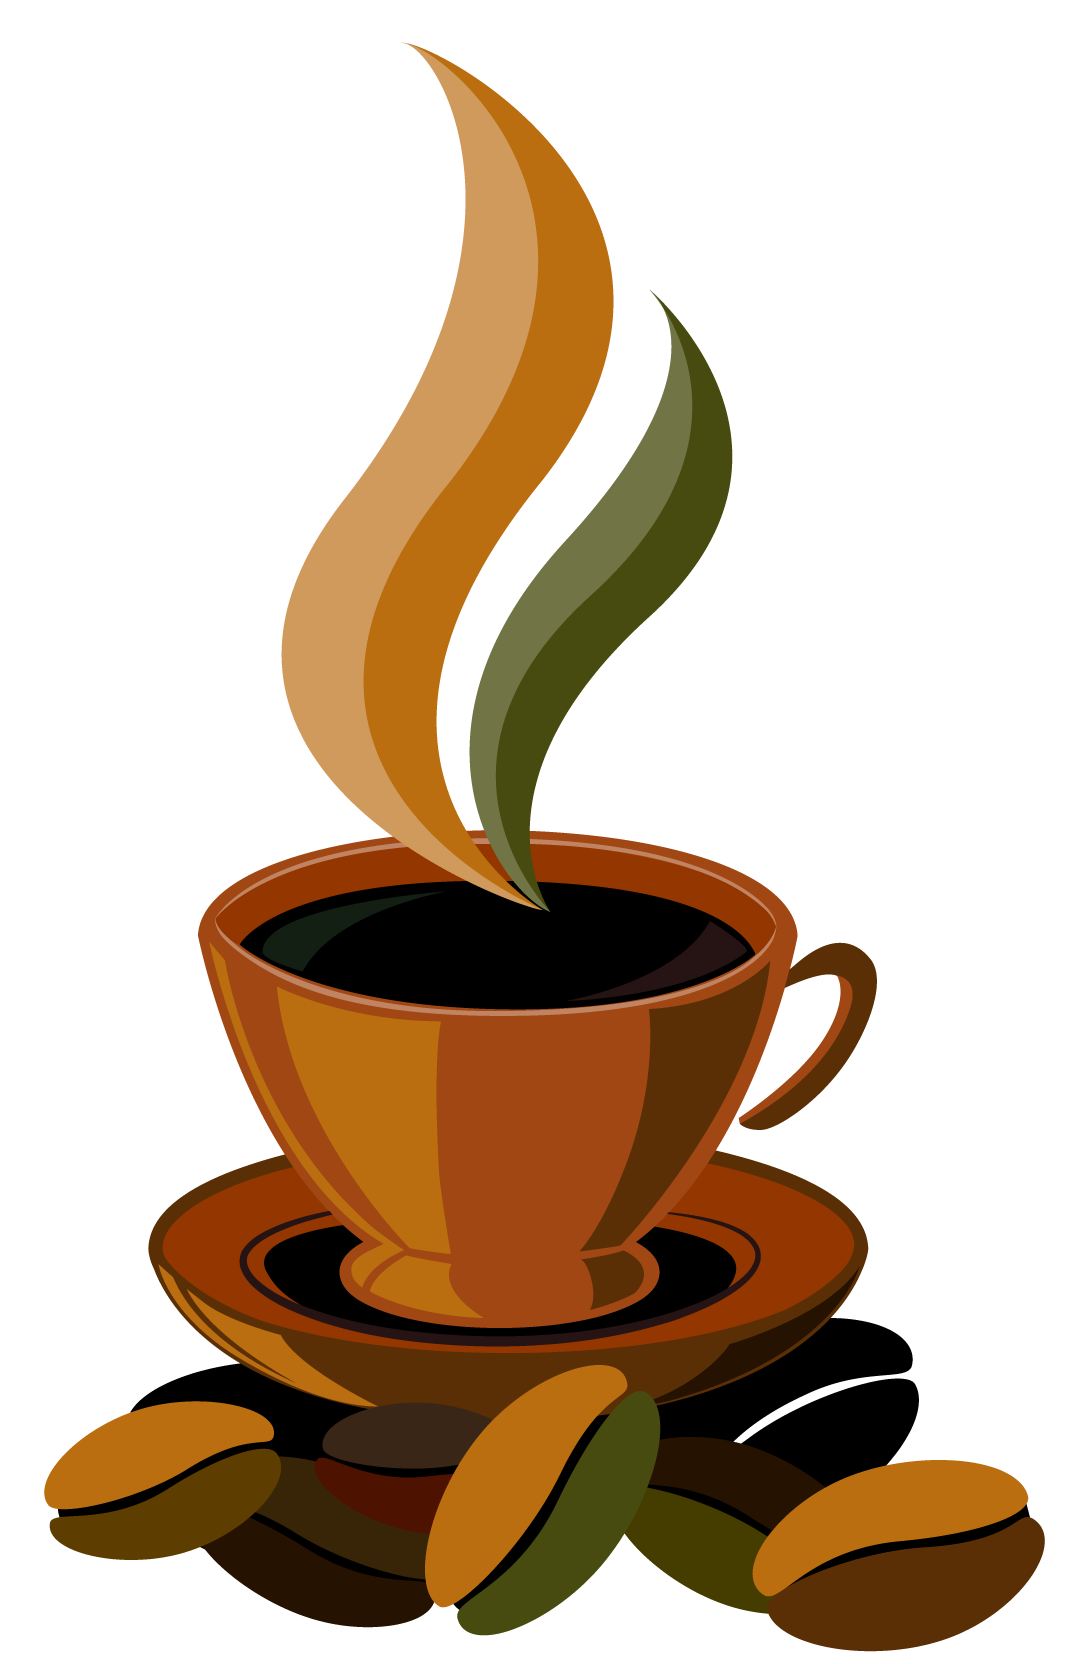 Coffee cup png gallery. Mud clipart vector